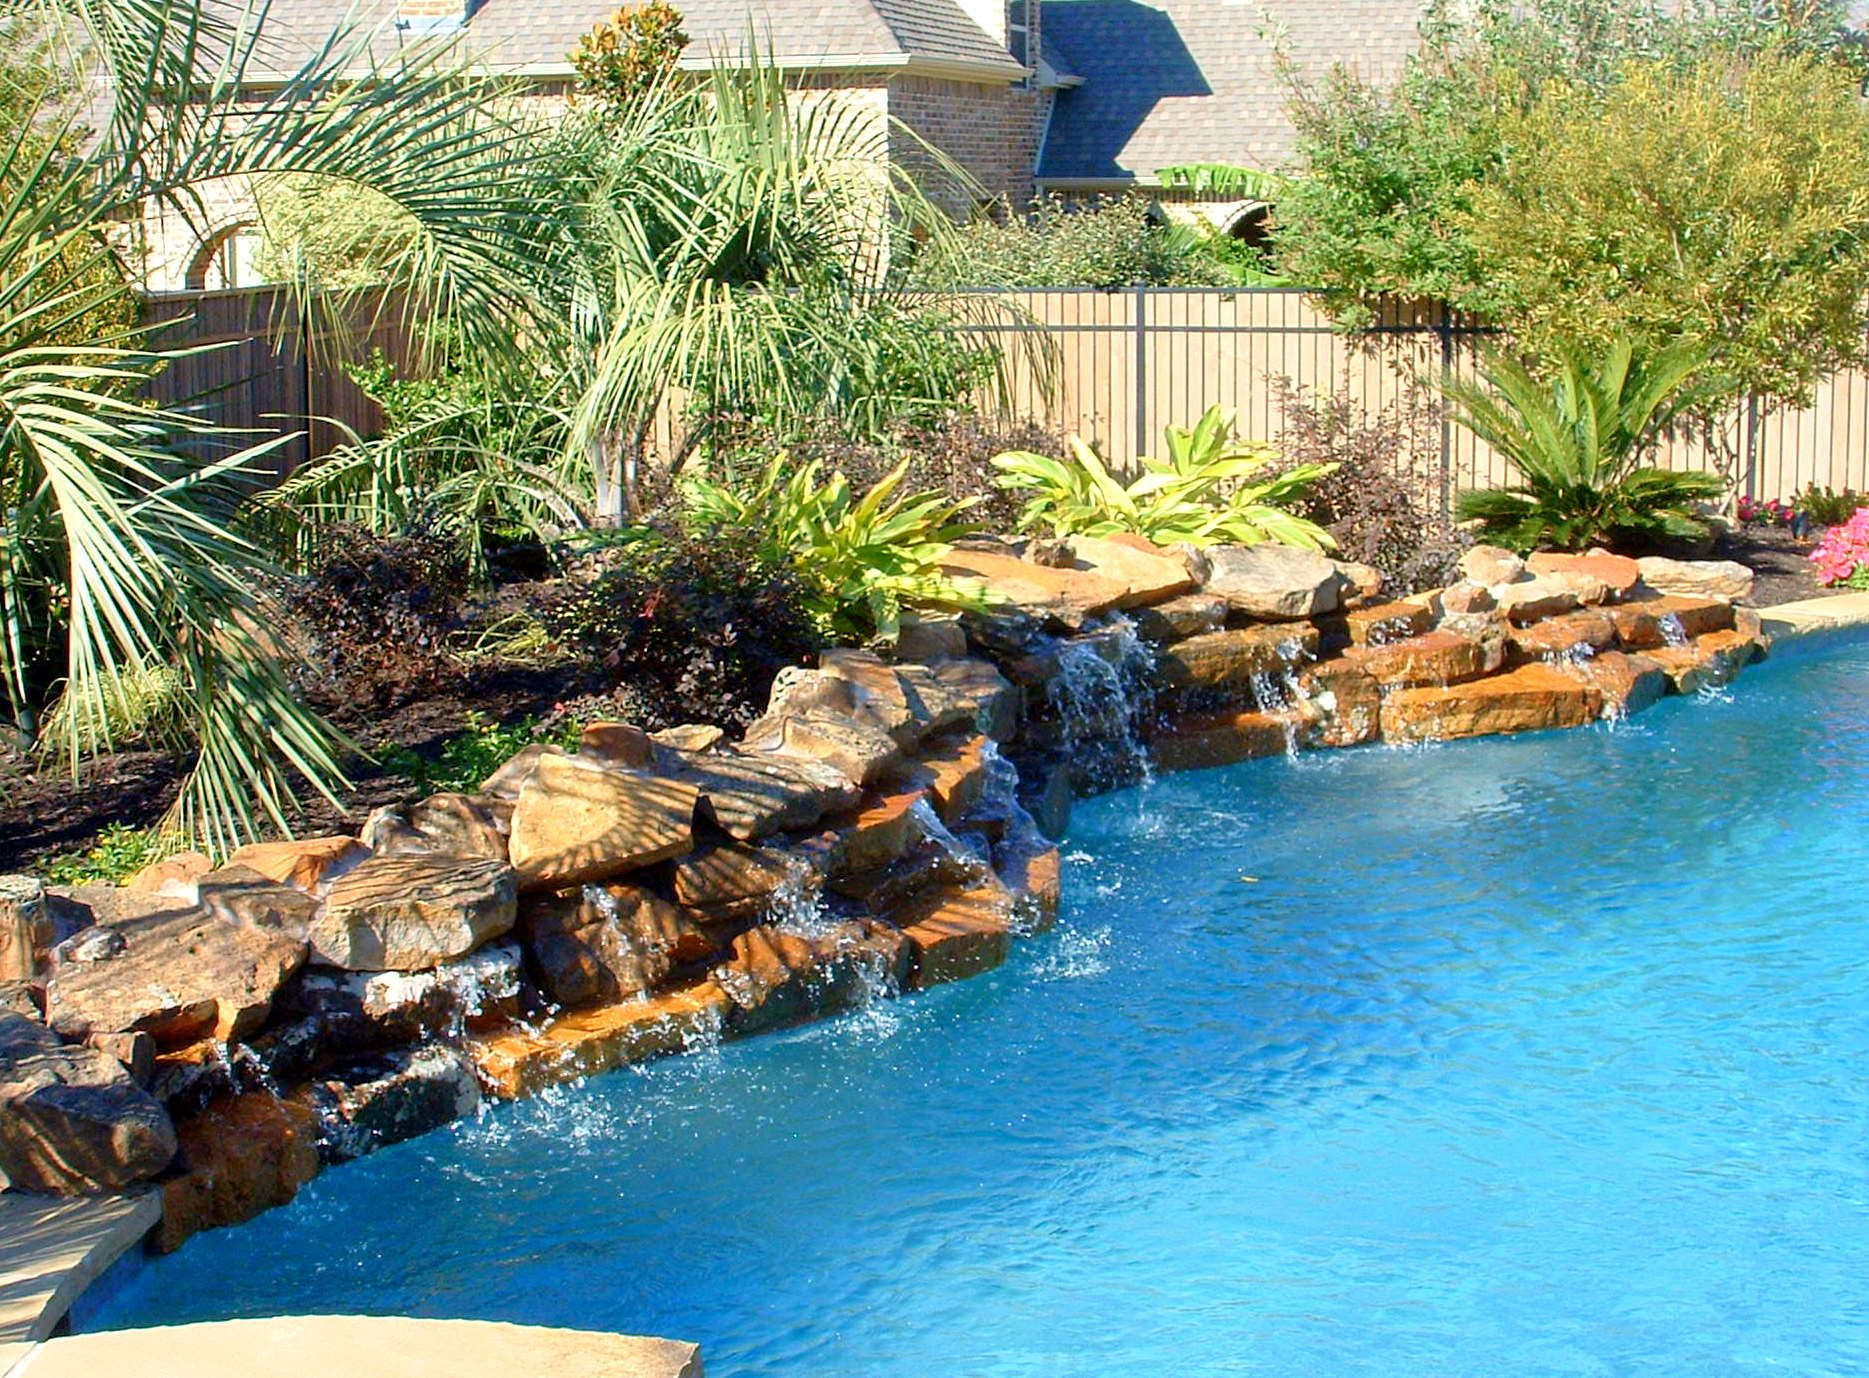 Pool Cool Design Exterior Waterfall Pools Ideas Lovely And Interesting Waterfall Pools With Natural Br Pool Waterfall Backyard Pool Landscaping Backyard Pool